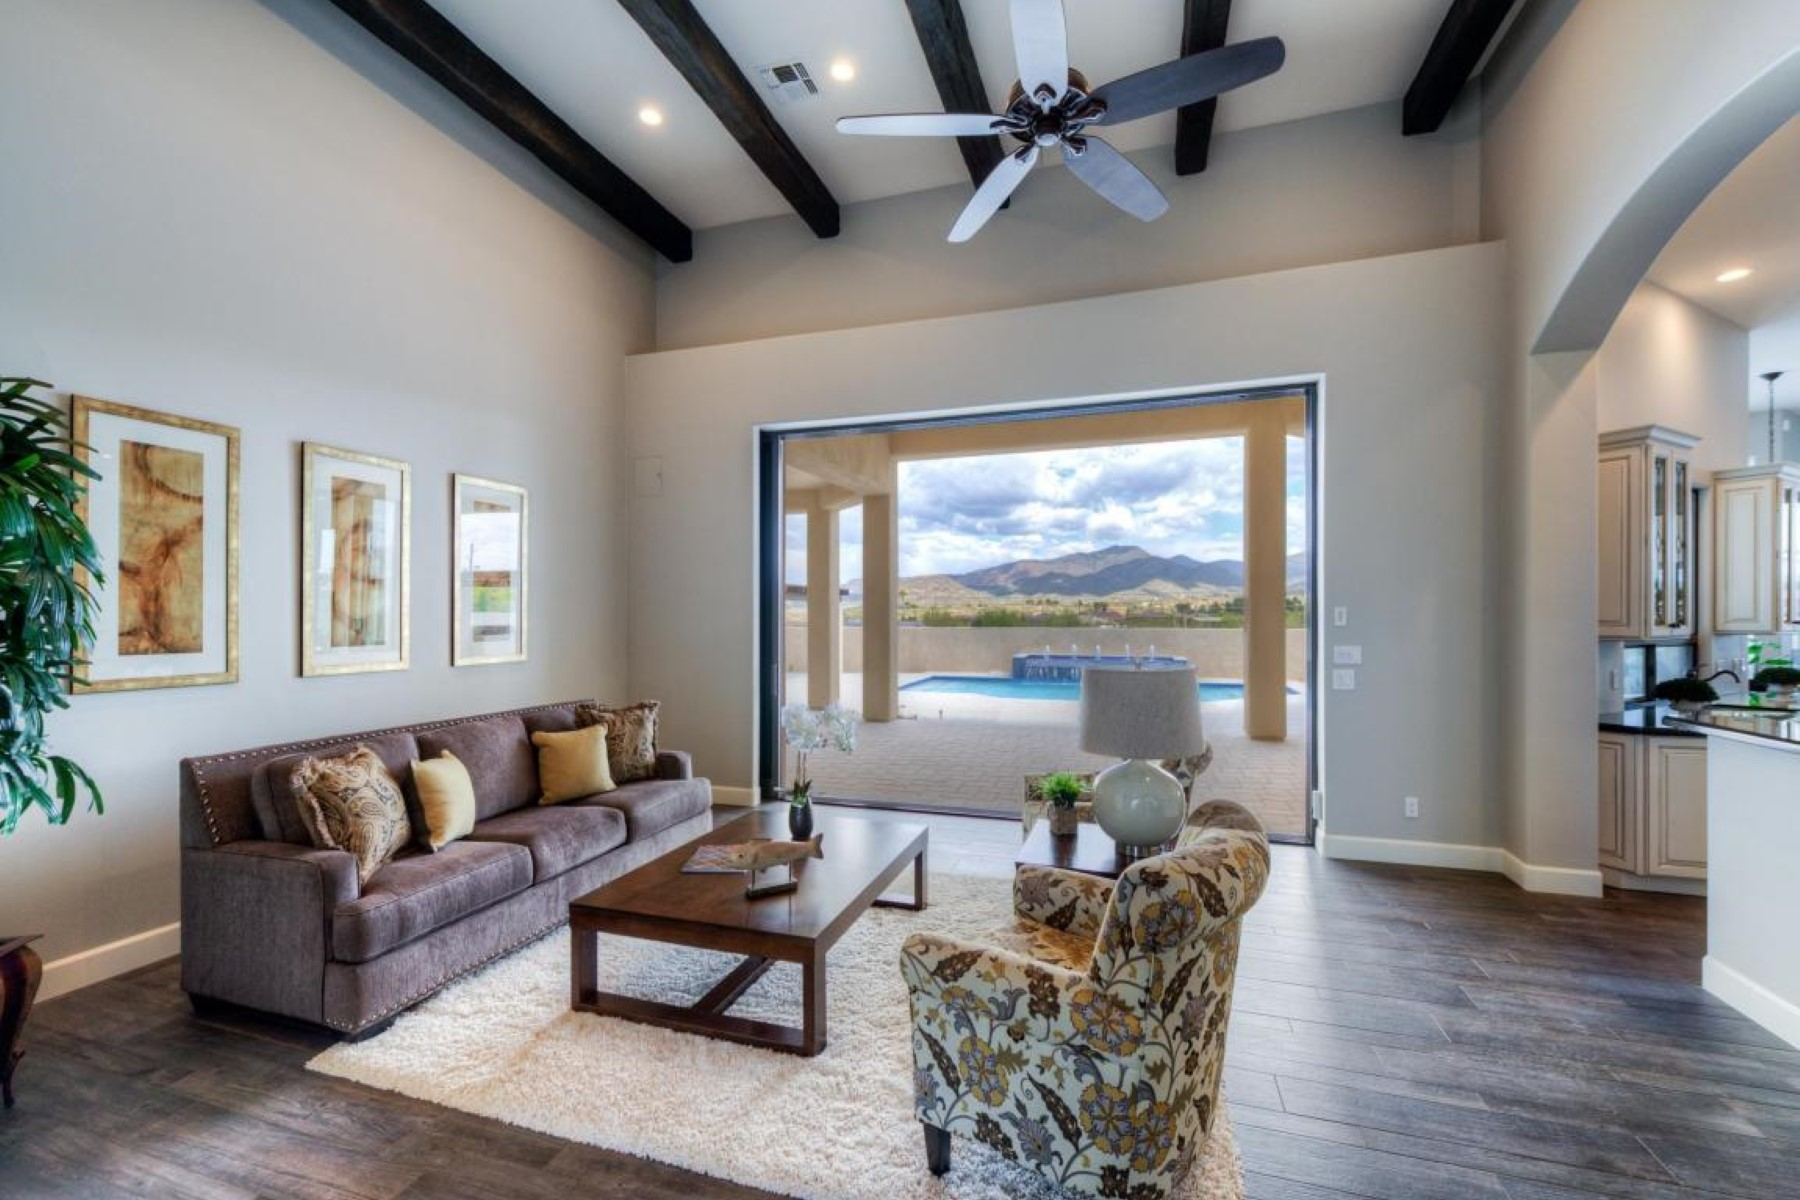 Single Family Home for Sale at Charming contemporary home with 360 degree views 7658 E Nonchalant Avenue Carefree, Arizona, 85377 United States